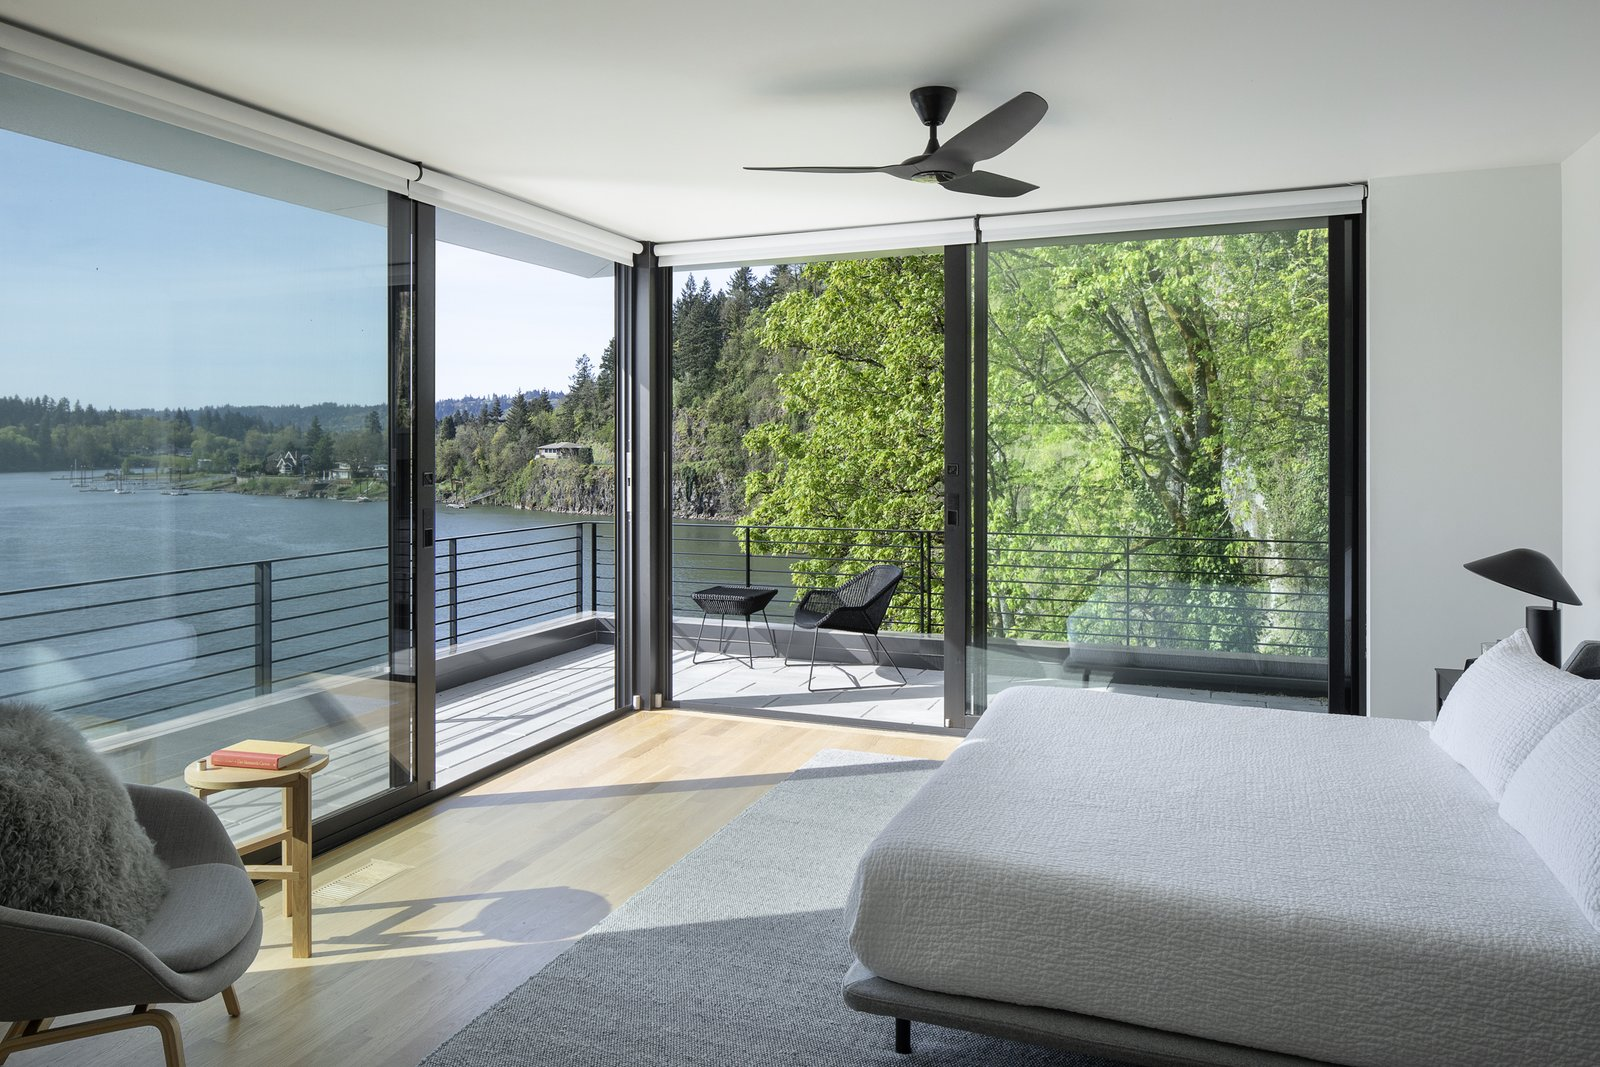 Master suite on the 3rd floor overlooking the river.  Riverwood